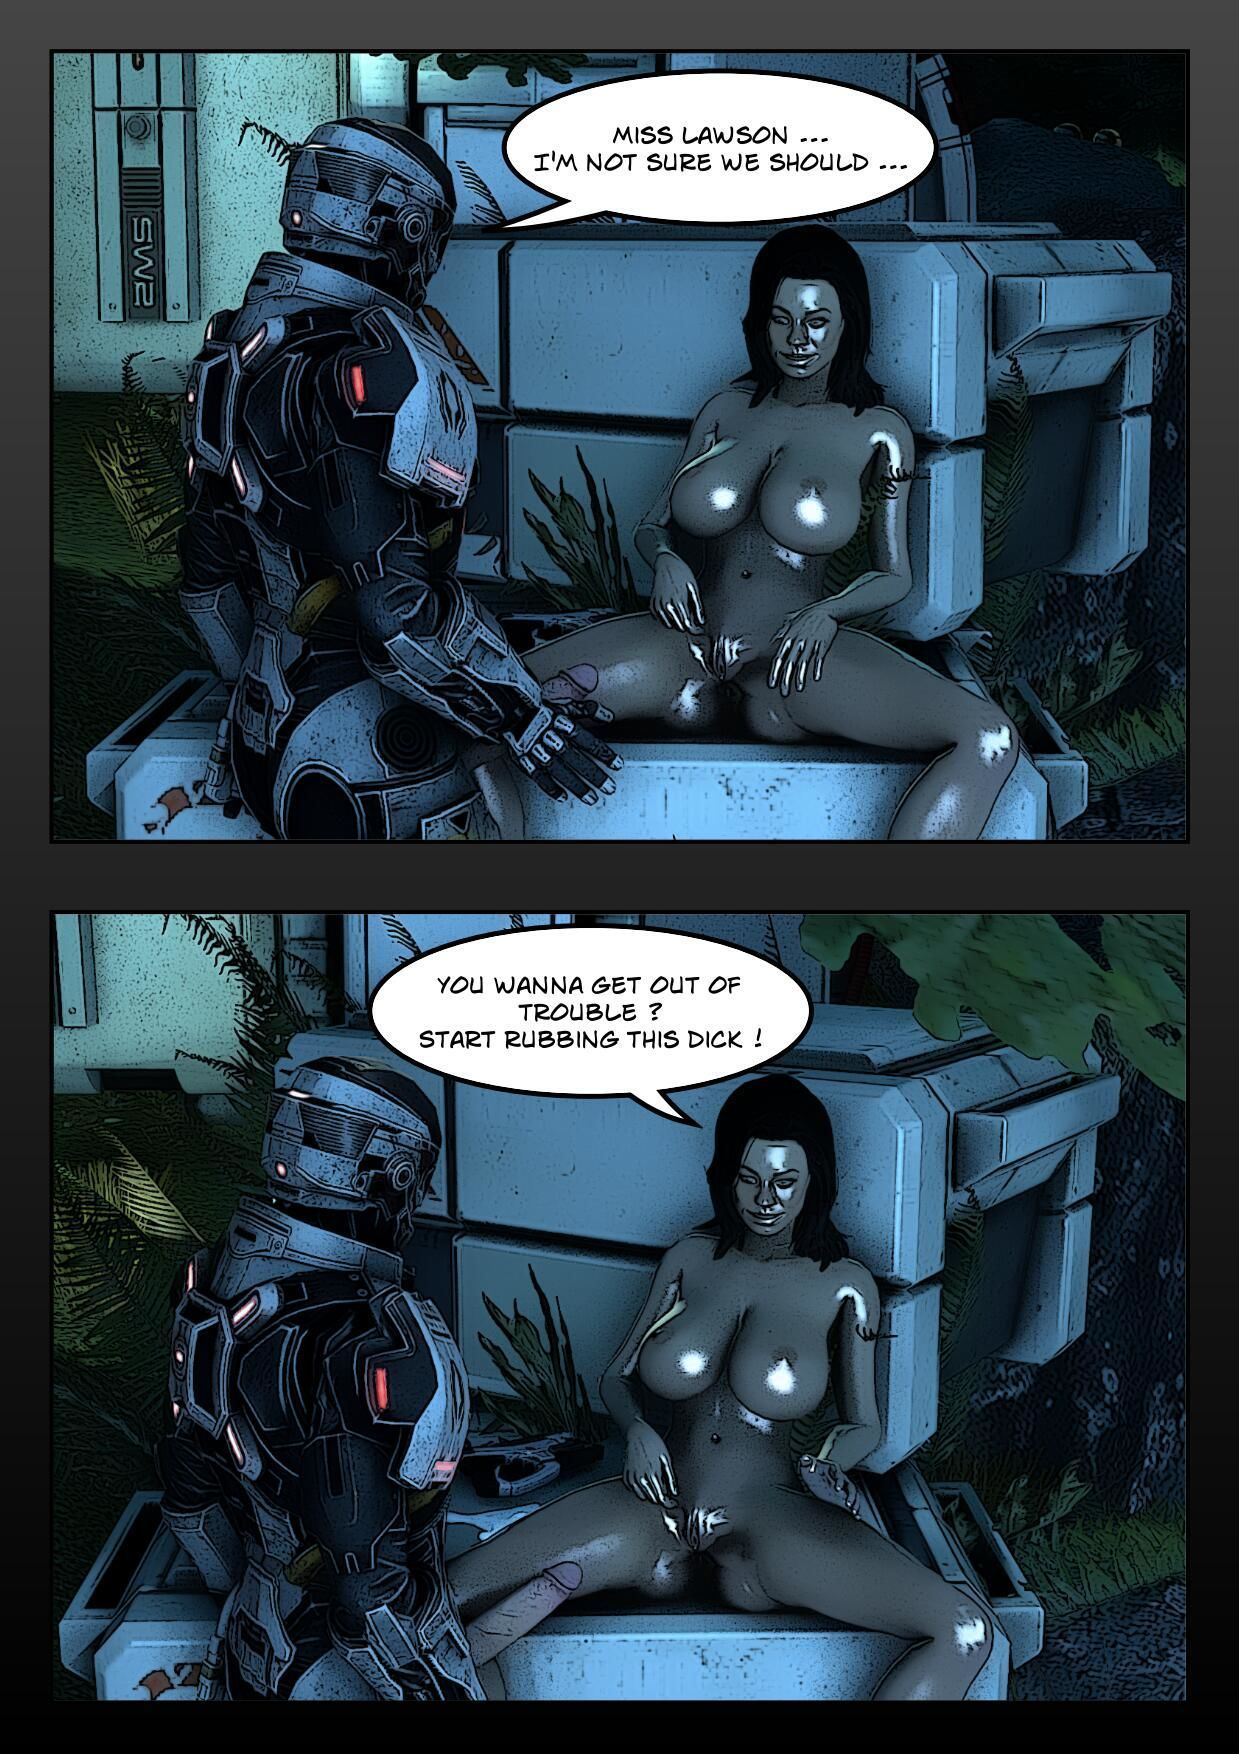 [KelSFM] The outpost Issue 001 (Mass Effect)